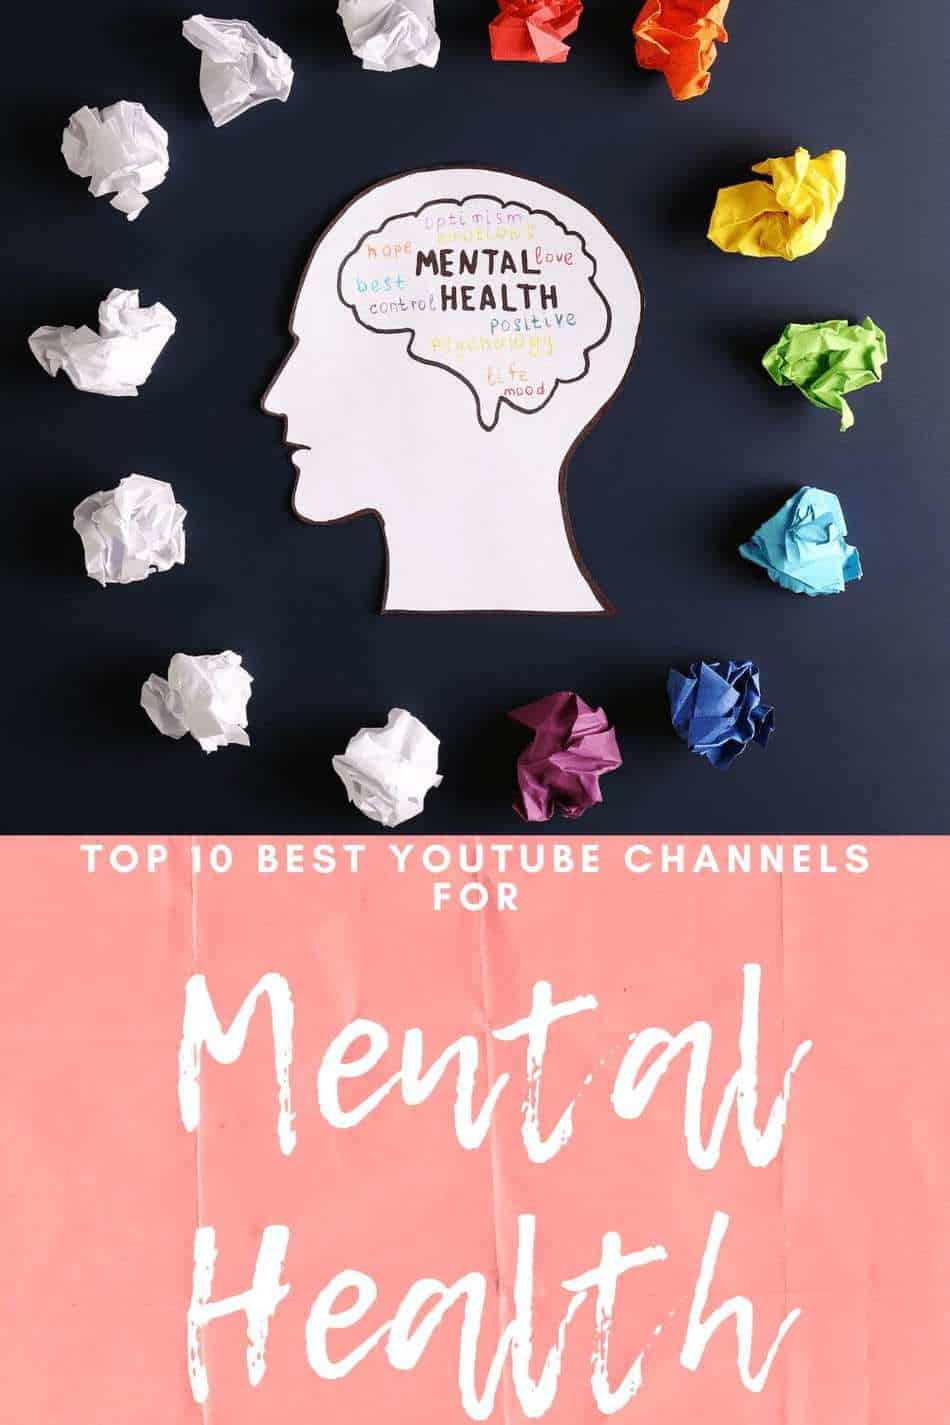 Top 10 best YouTube Channels for Mental Health